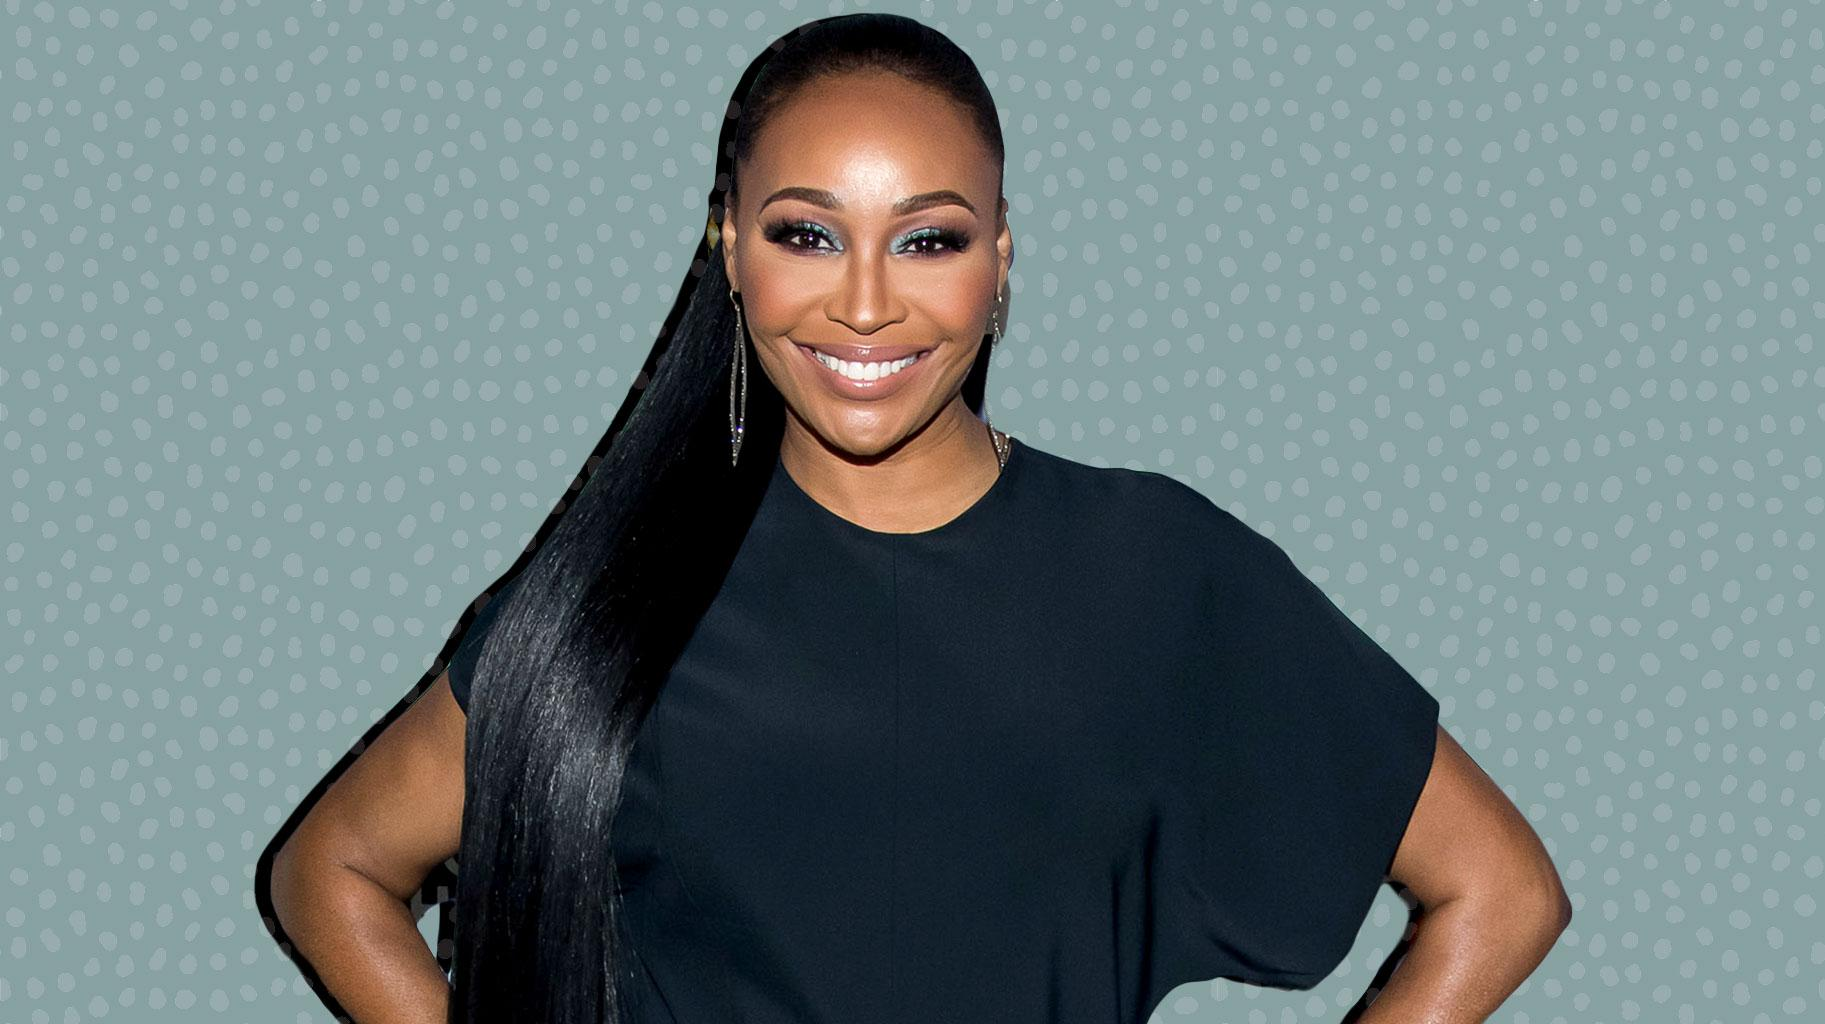 Cynthia Bailey Asks Fans How They Are Celebrating Valentine's Day - See Her Message